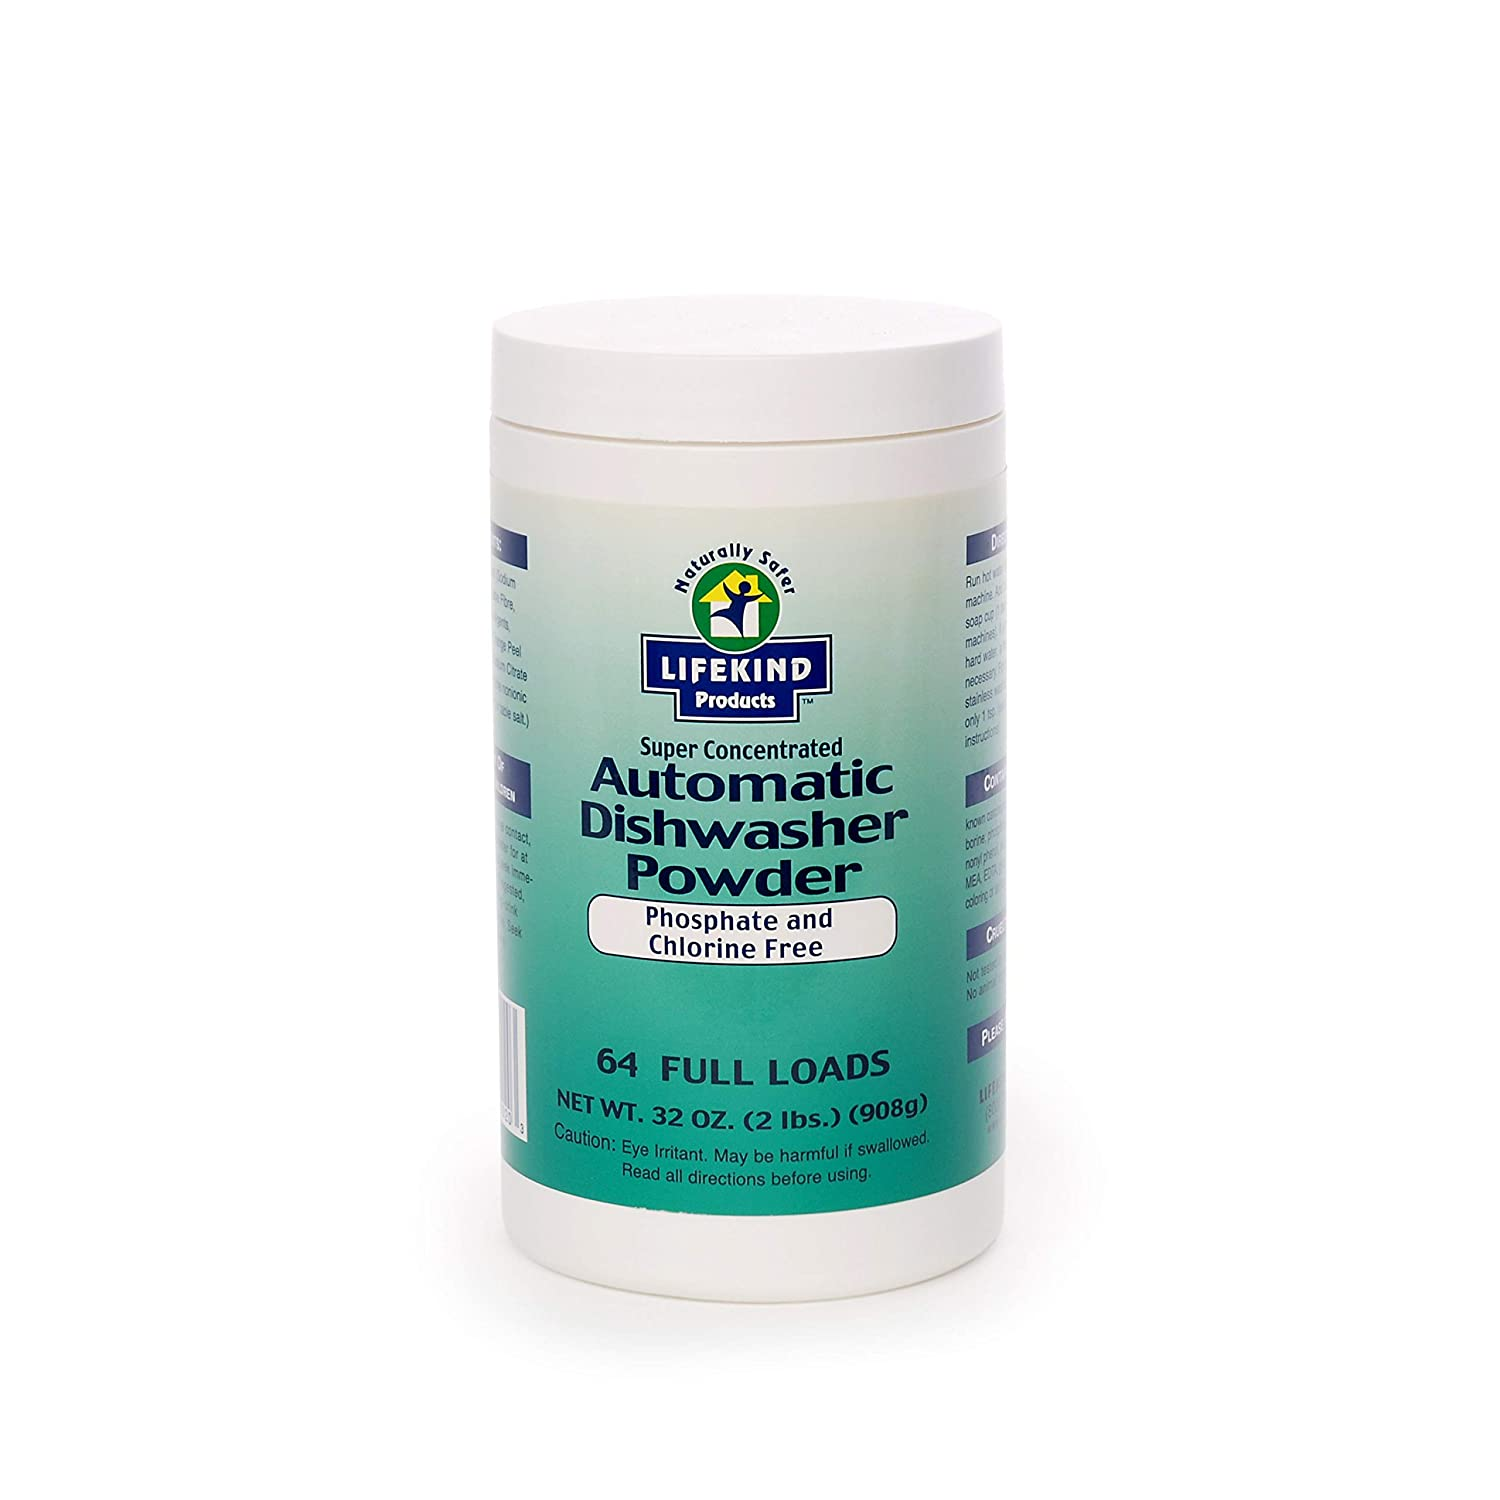 LIFEKIND Natural Super Concentrated Automatic Dishwasher Detergent Powder (2 lbs, 64 Loads) - Phosphate and Chlorine Free